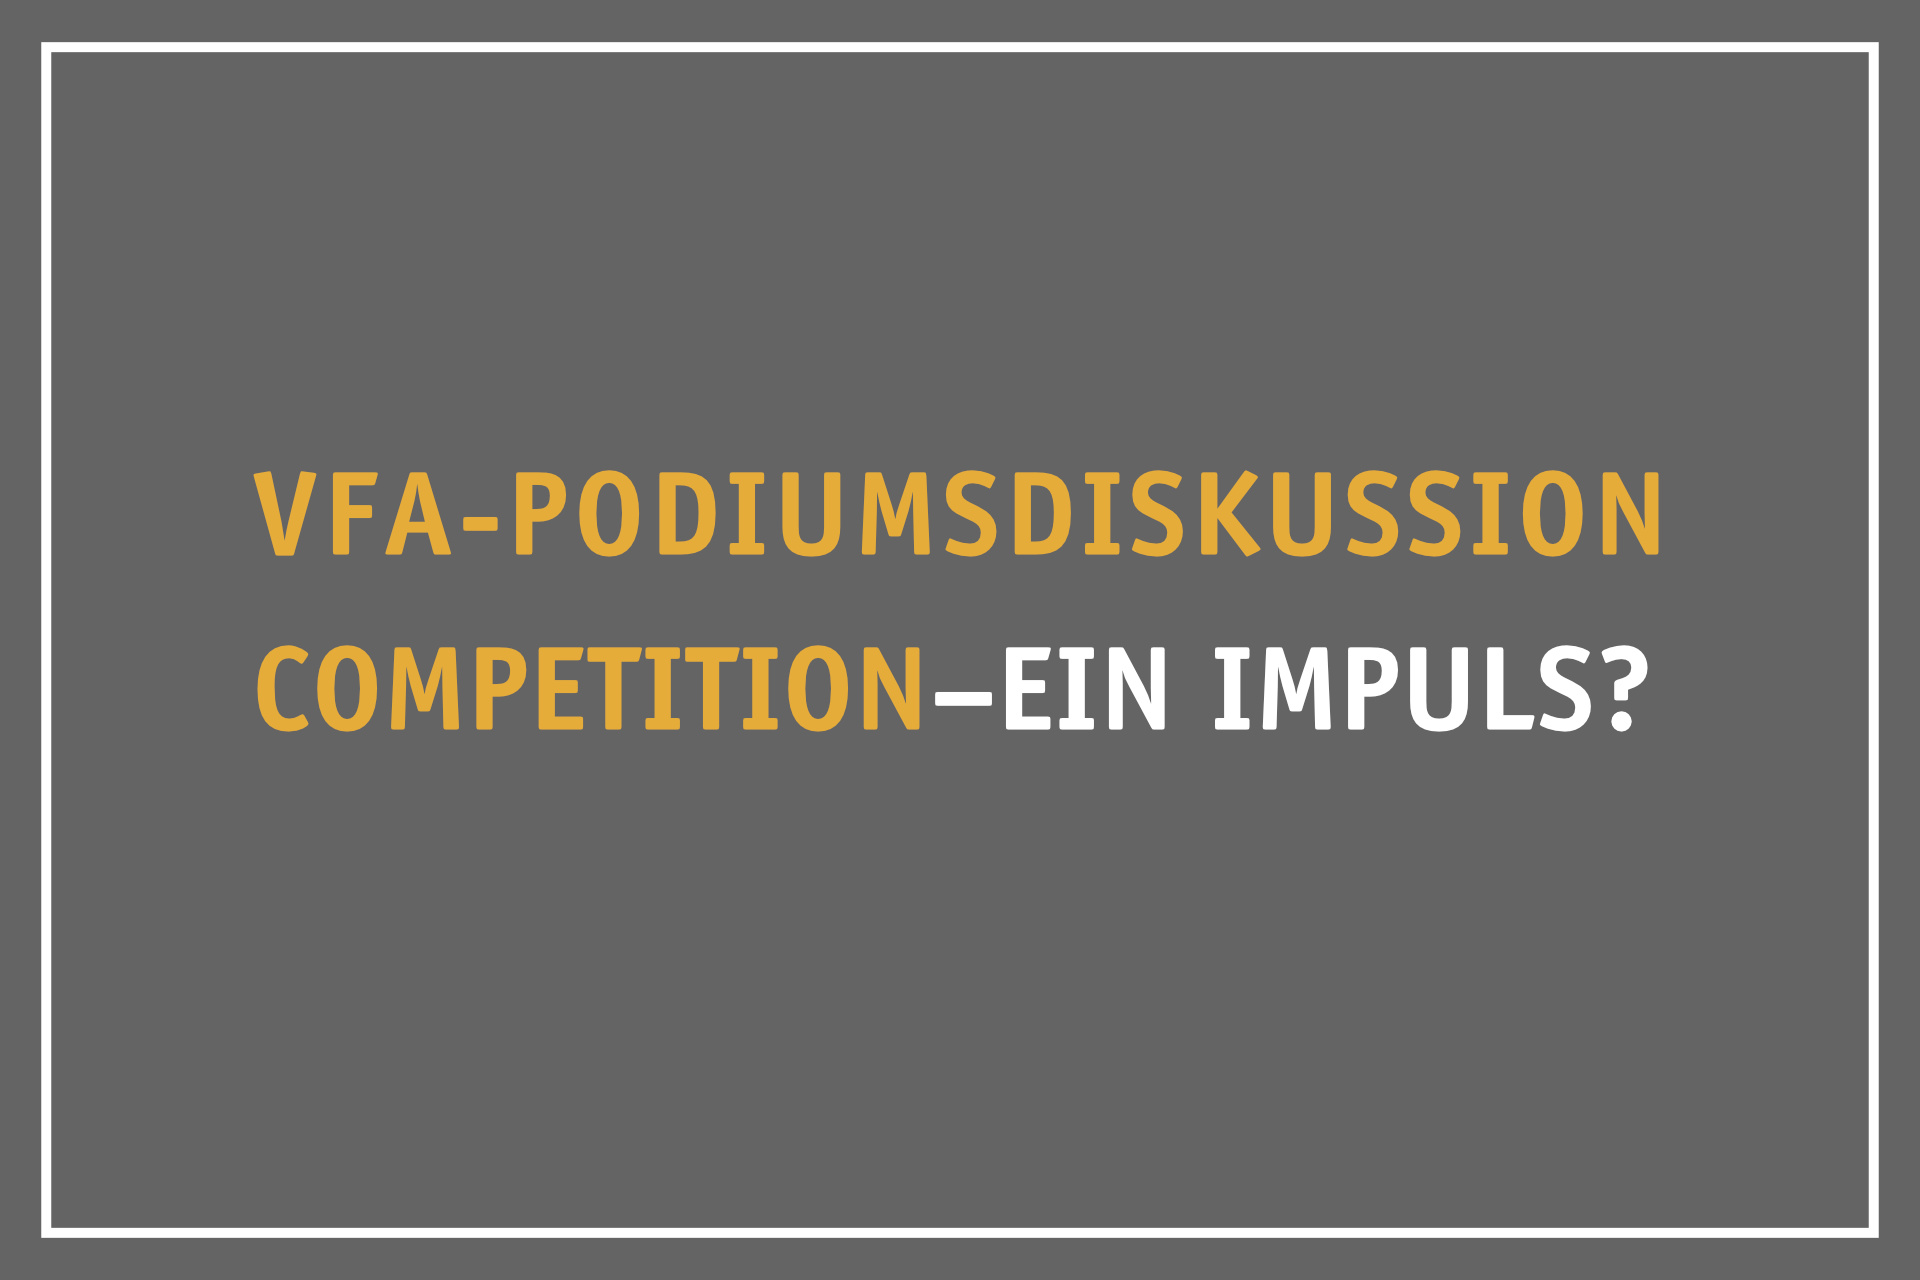 VfA-Podiumsdiskussion